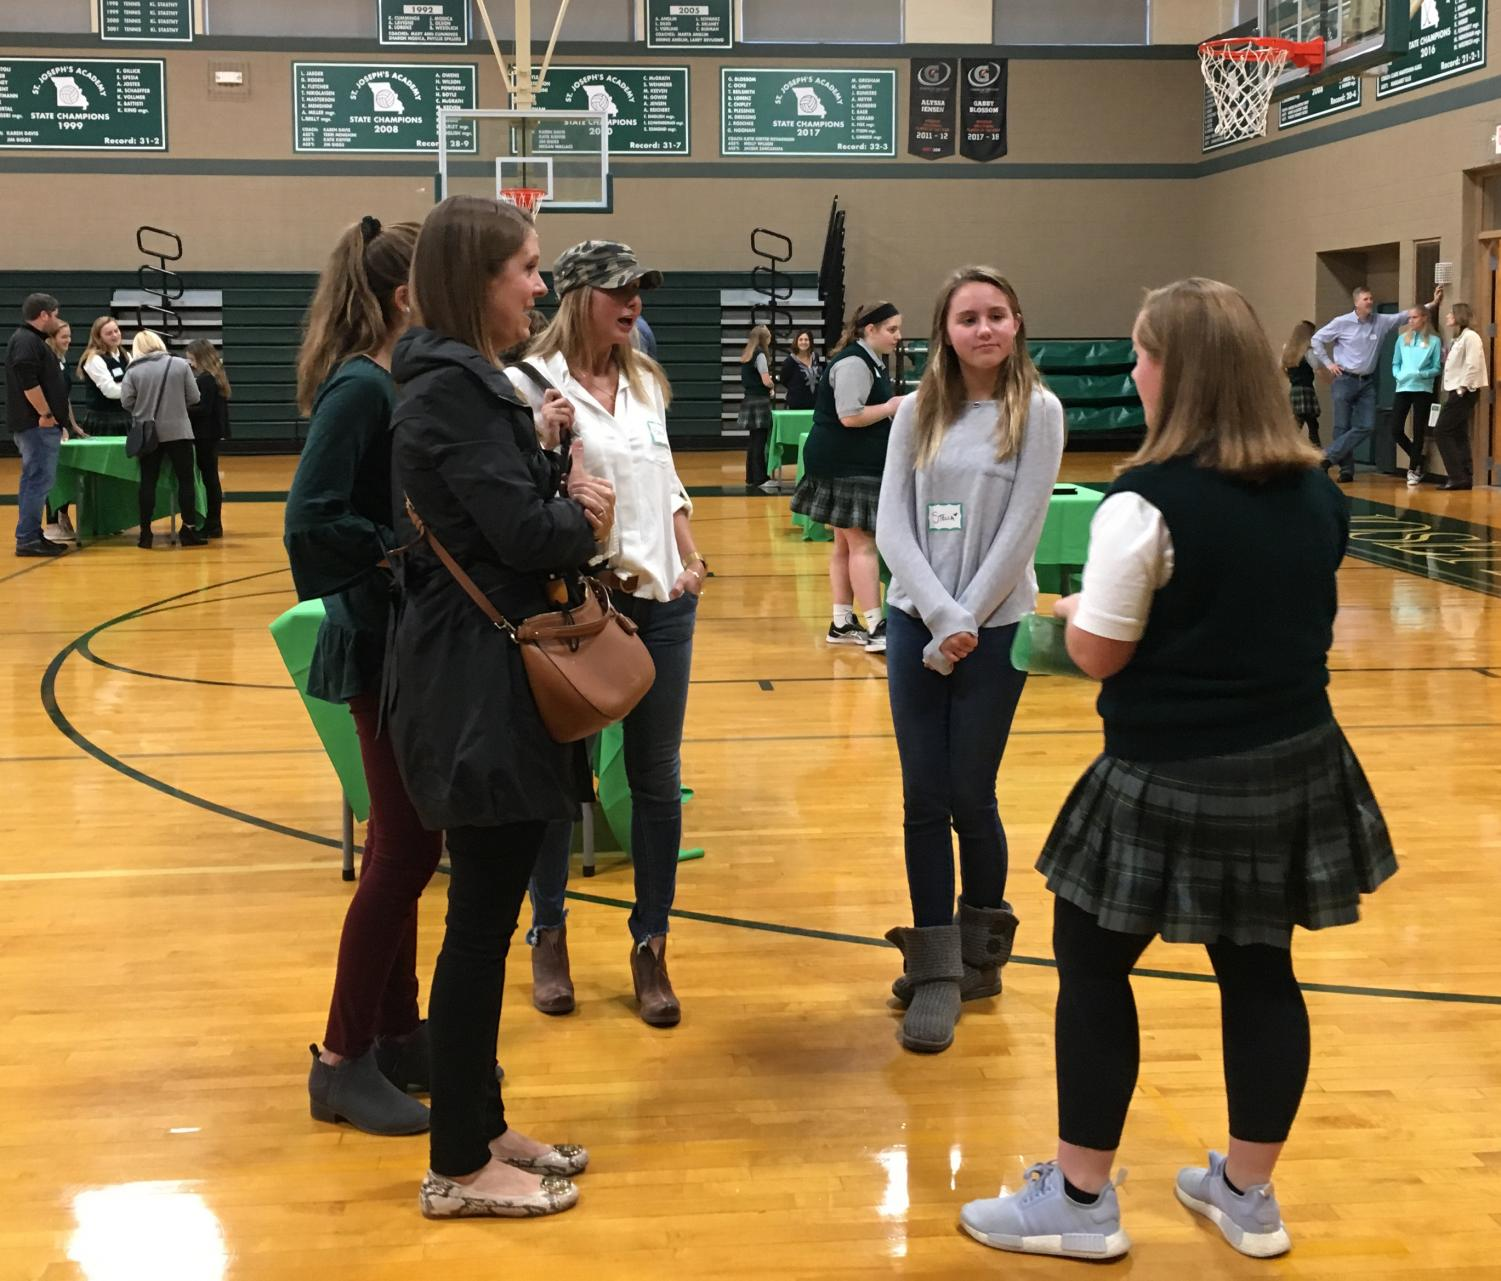 Student ambassadors greet families in the gym before taking them on a tour of St. Joseph. Photo: Claire Price